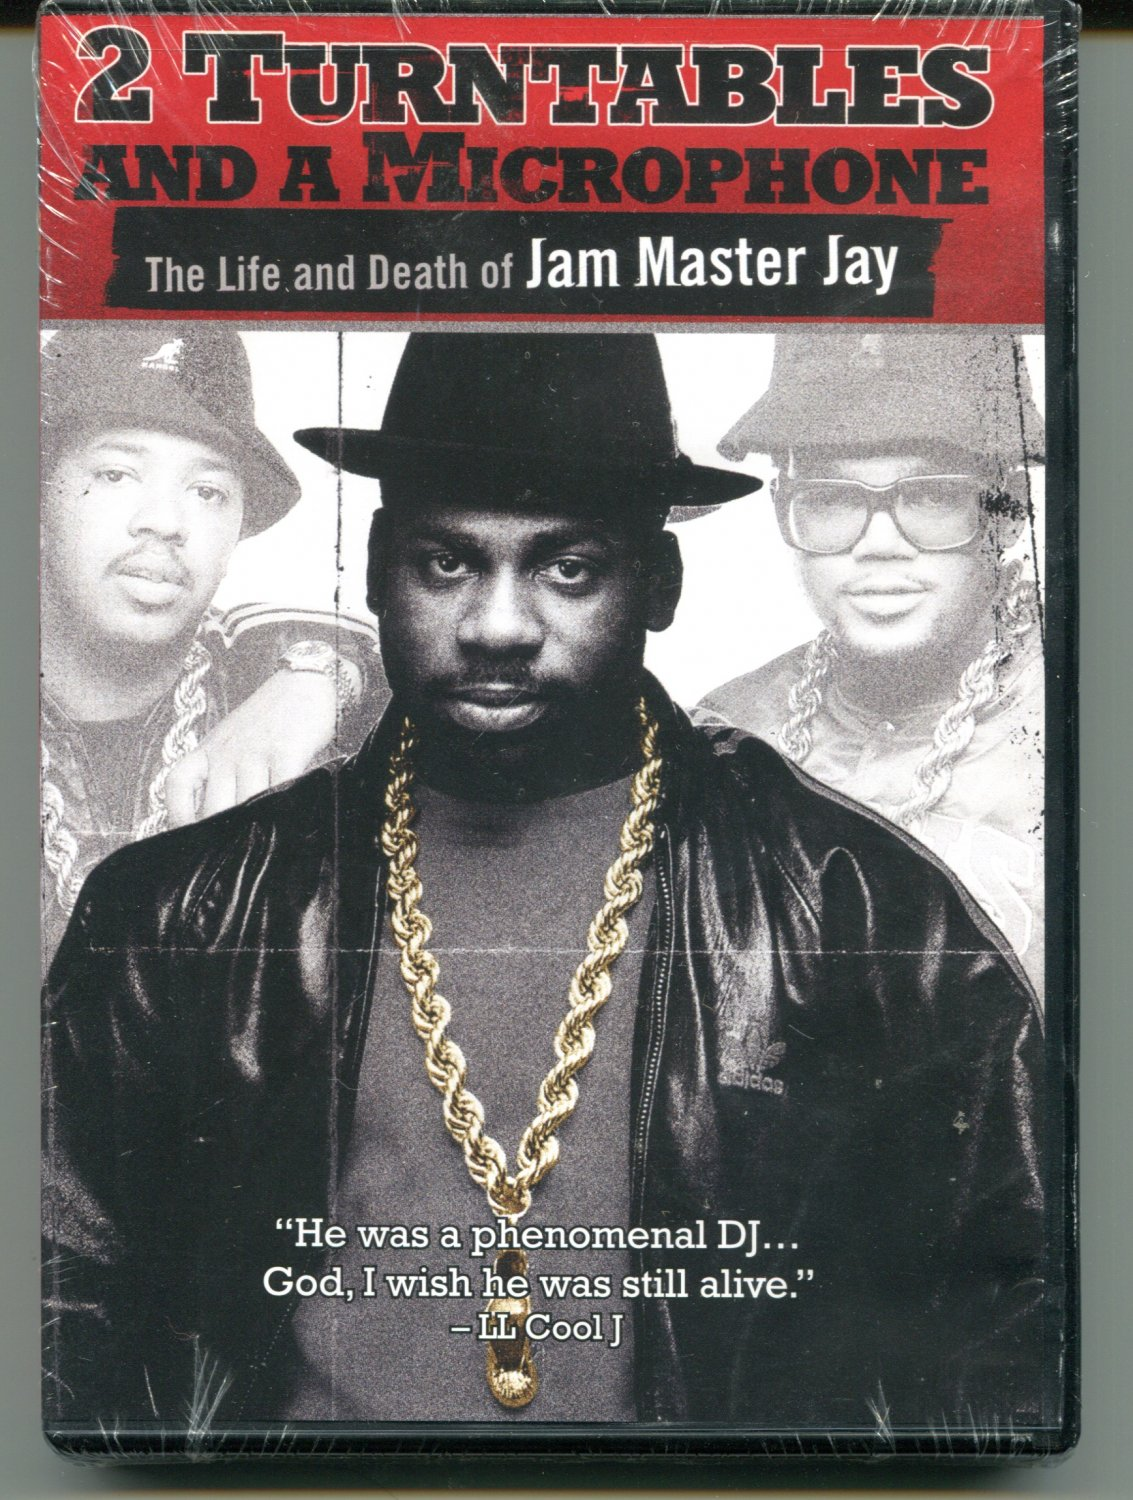 2 Turntables and a Microphone - Life and death of Jam Master Jay (DVD 2008)